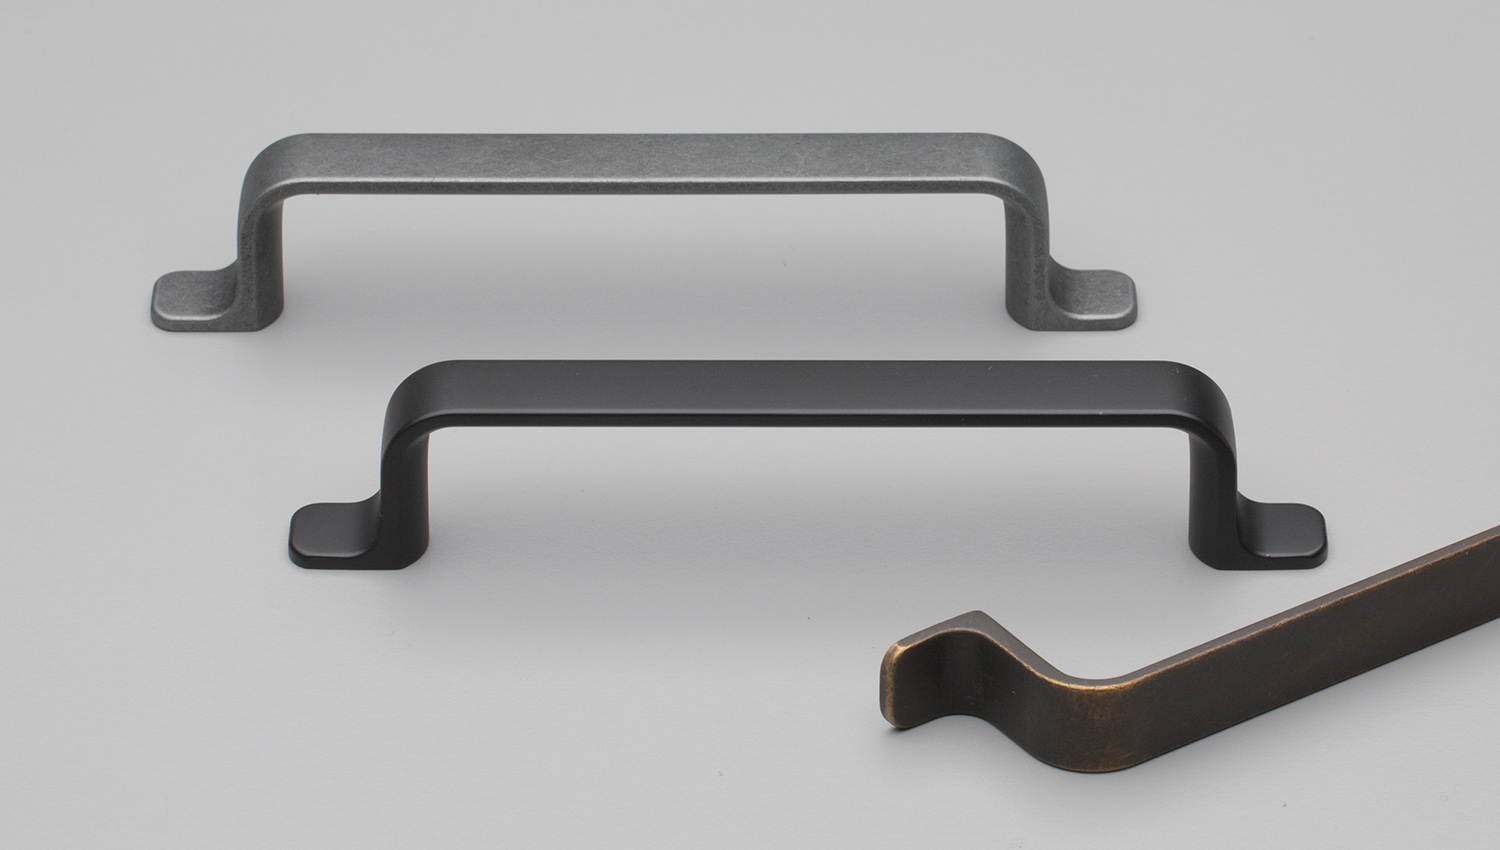 L833 Hampton / Shaker flat D handle curved under for Kitchen handle, cabinet handle, bathroom handle, kitchen hardware. colours Antique Brown (ABN),Matt Black (MBK),Rustic Grey (RG) mm, size overall 165,290 mm hole centre distance 128,256 mm